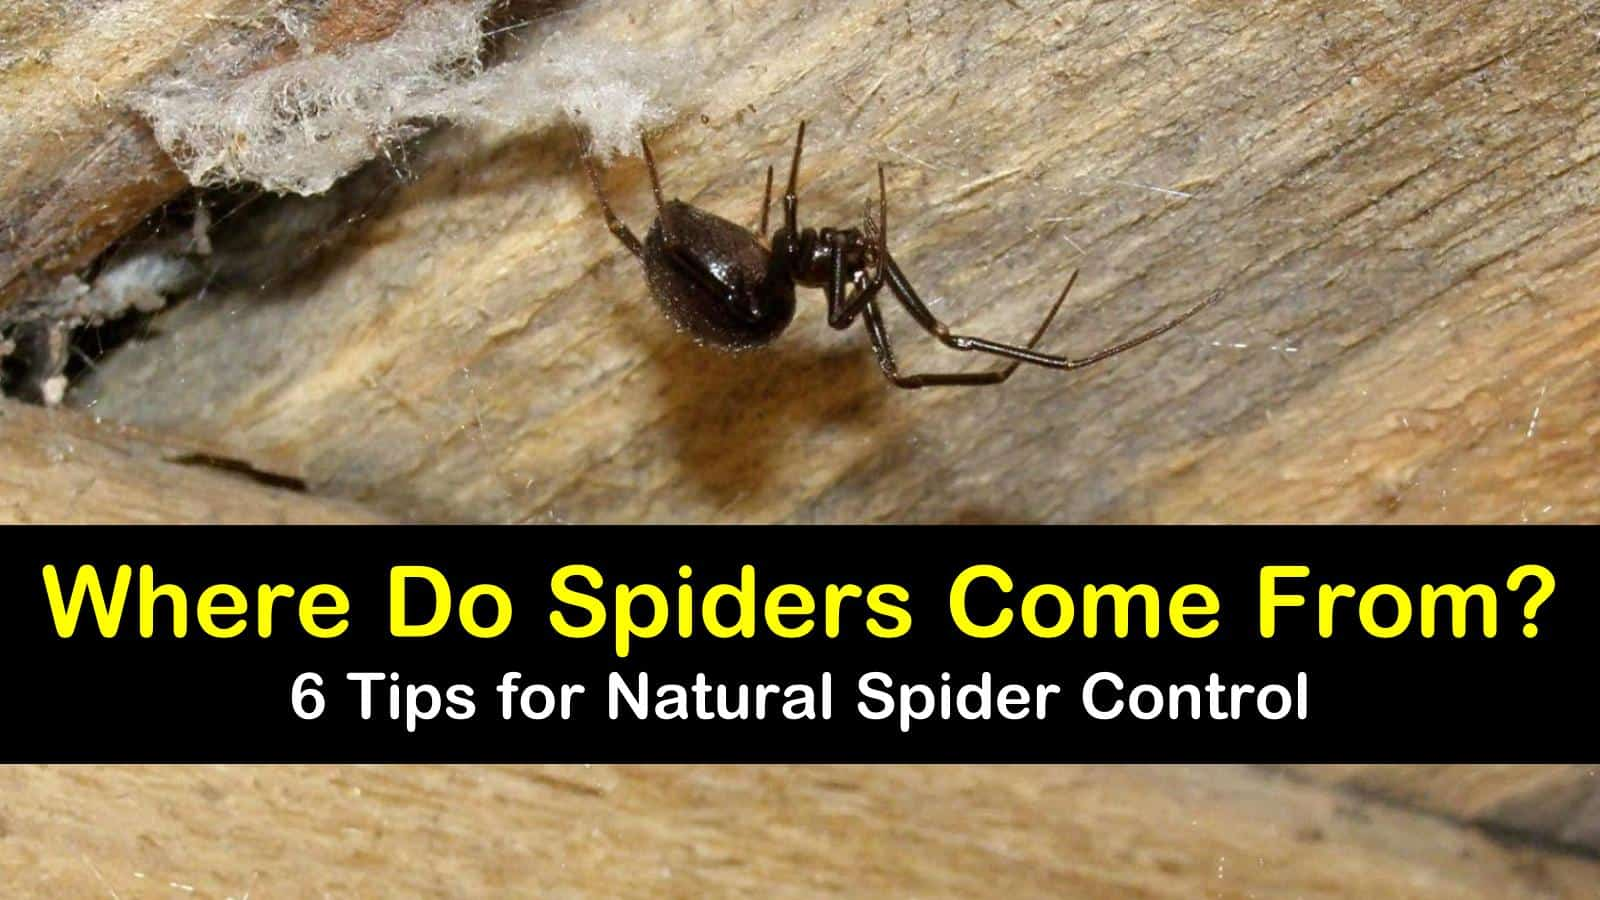 where do spiders come from titleimg1